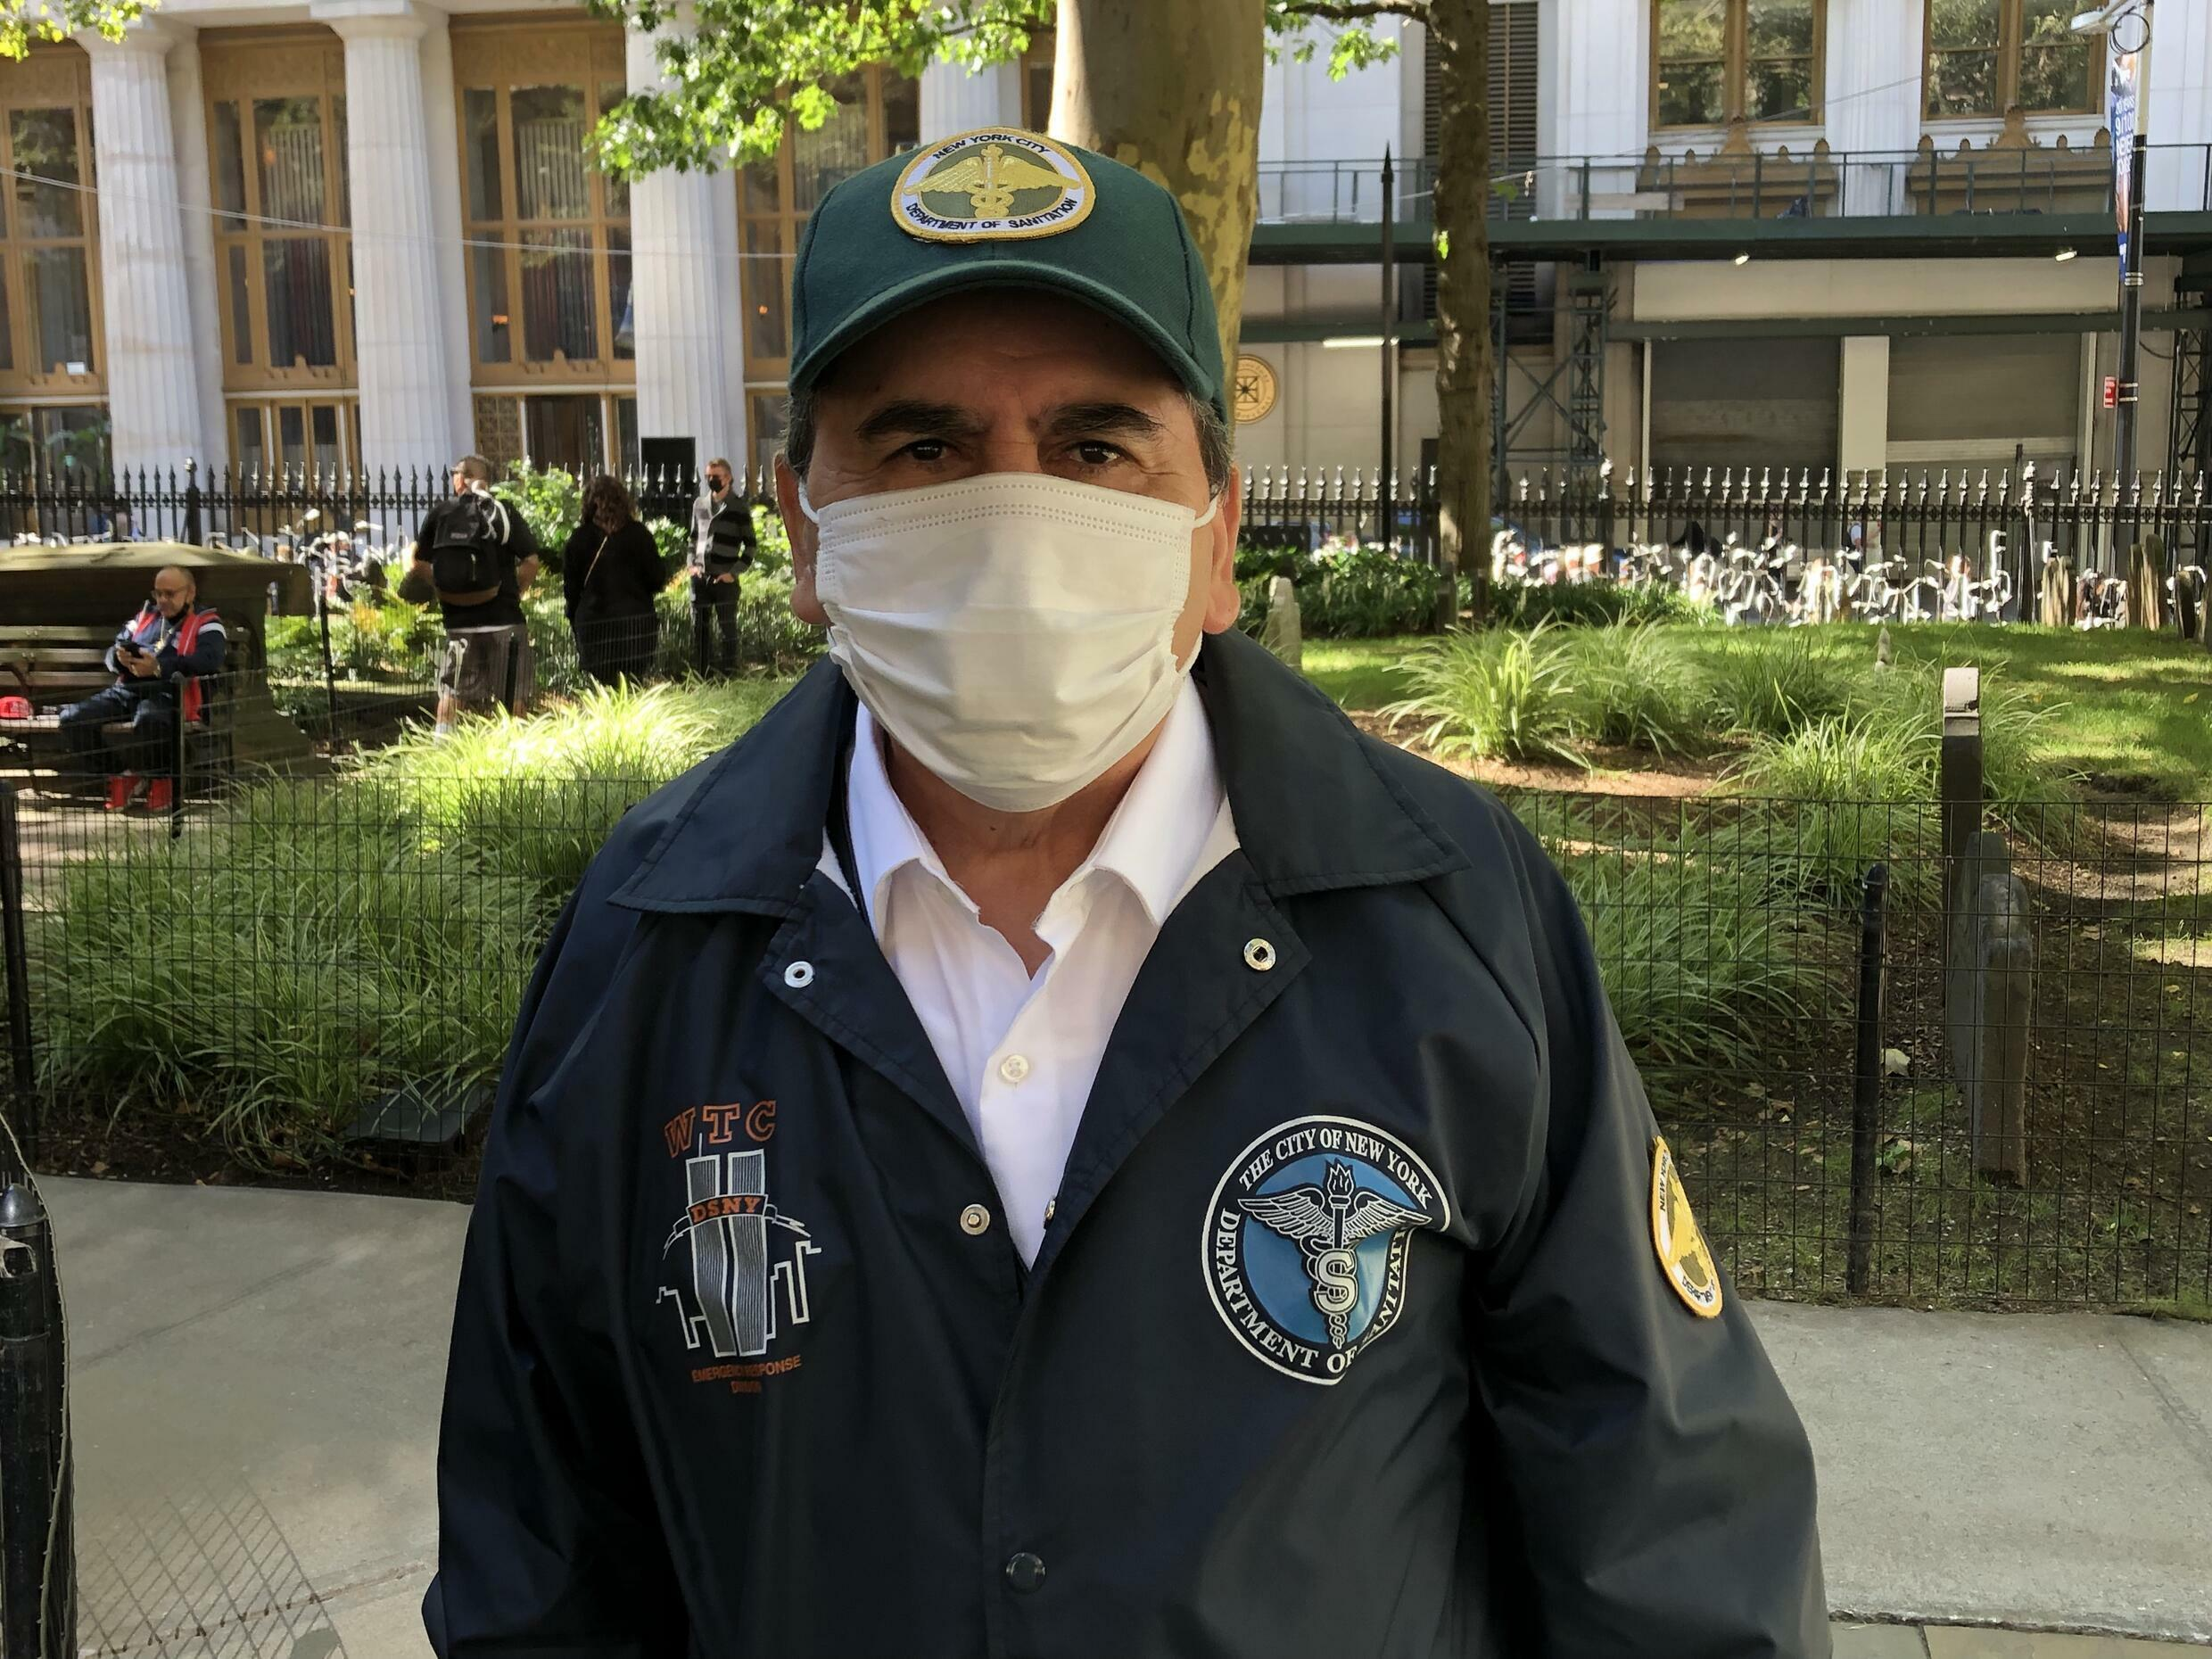 Angel Rodriguez, a retired sanitation worker from the Bronx, spent 52 days at Ground Zero, working to sift through the smoldering remains and recover the bodies of victims.